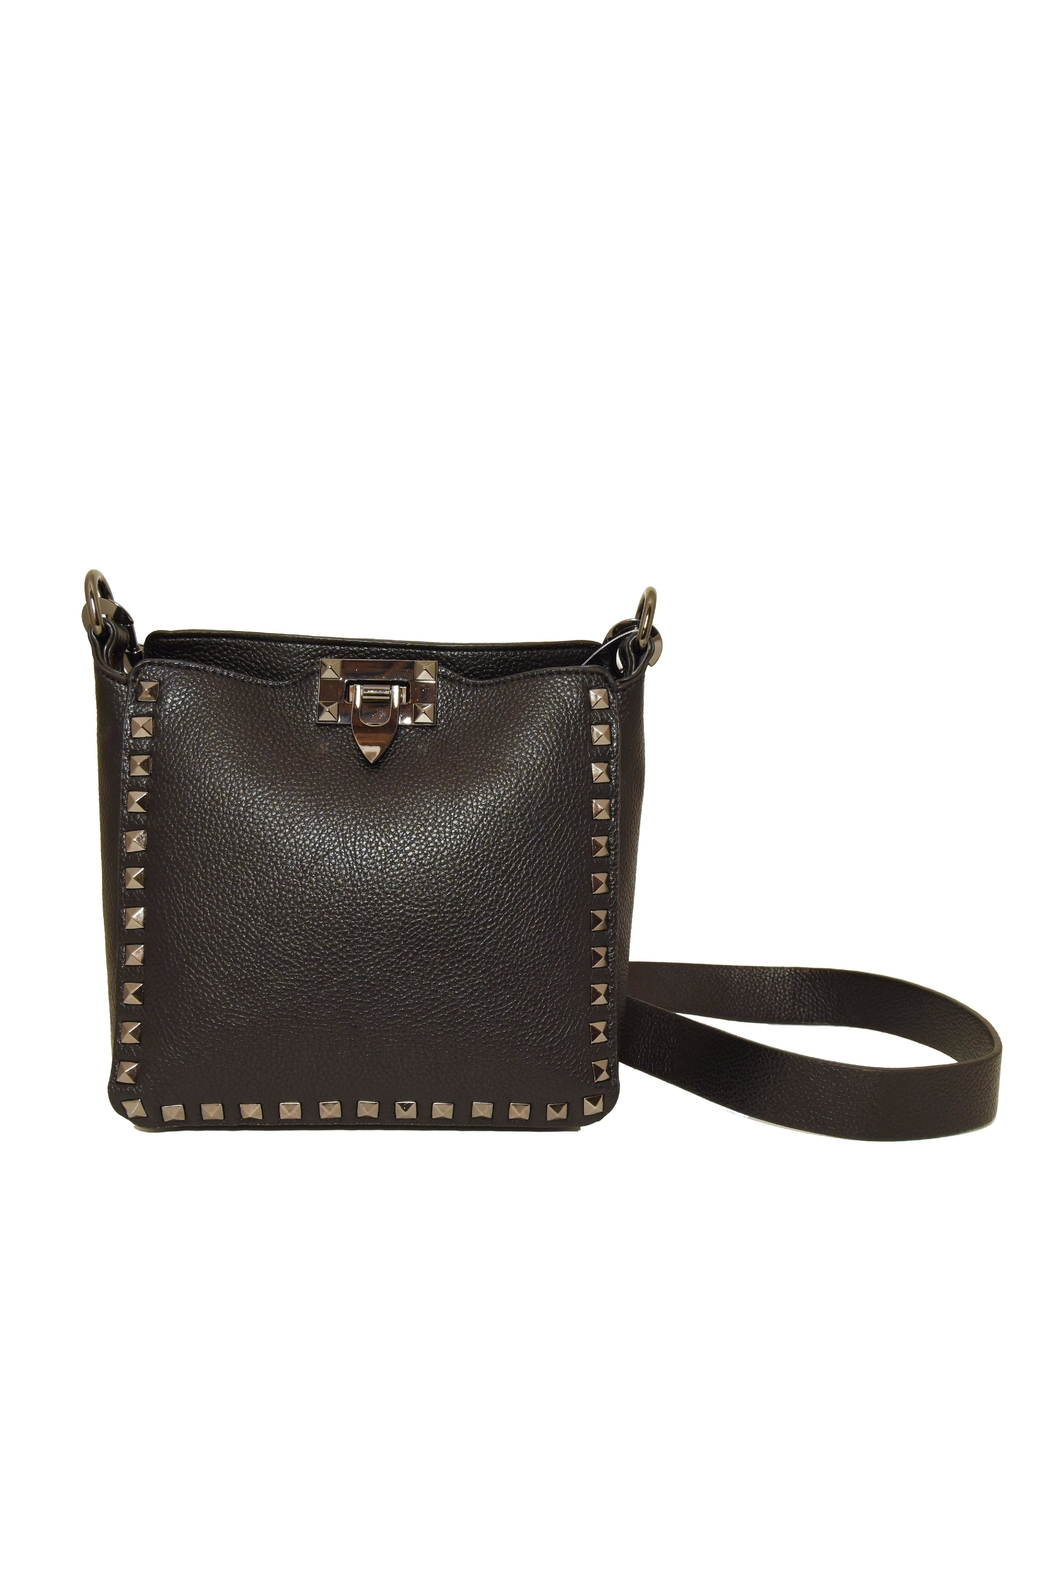 c5f8057d43dc6 INZI Square Studded Crossbody from California by Purseonality ...